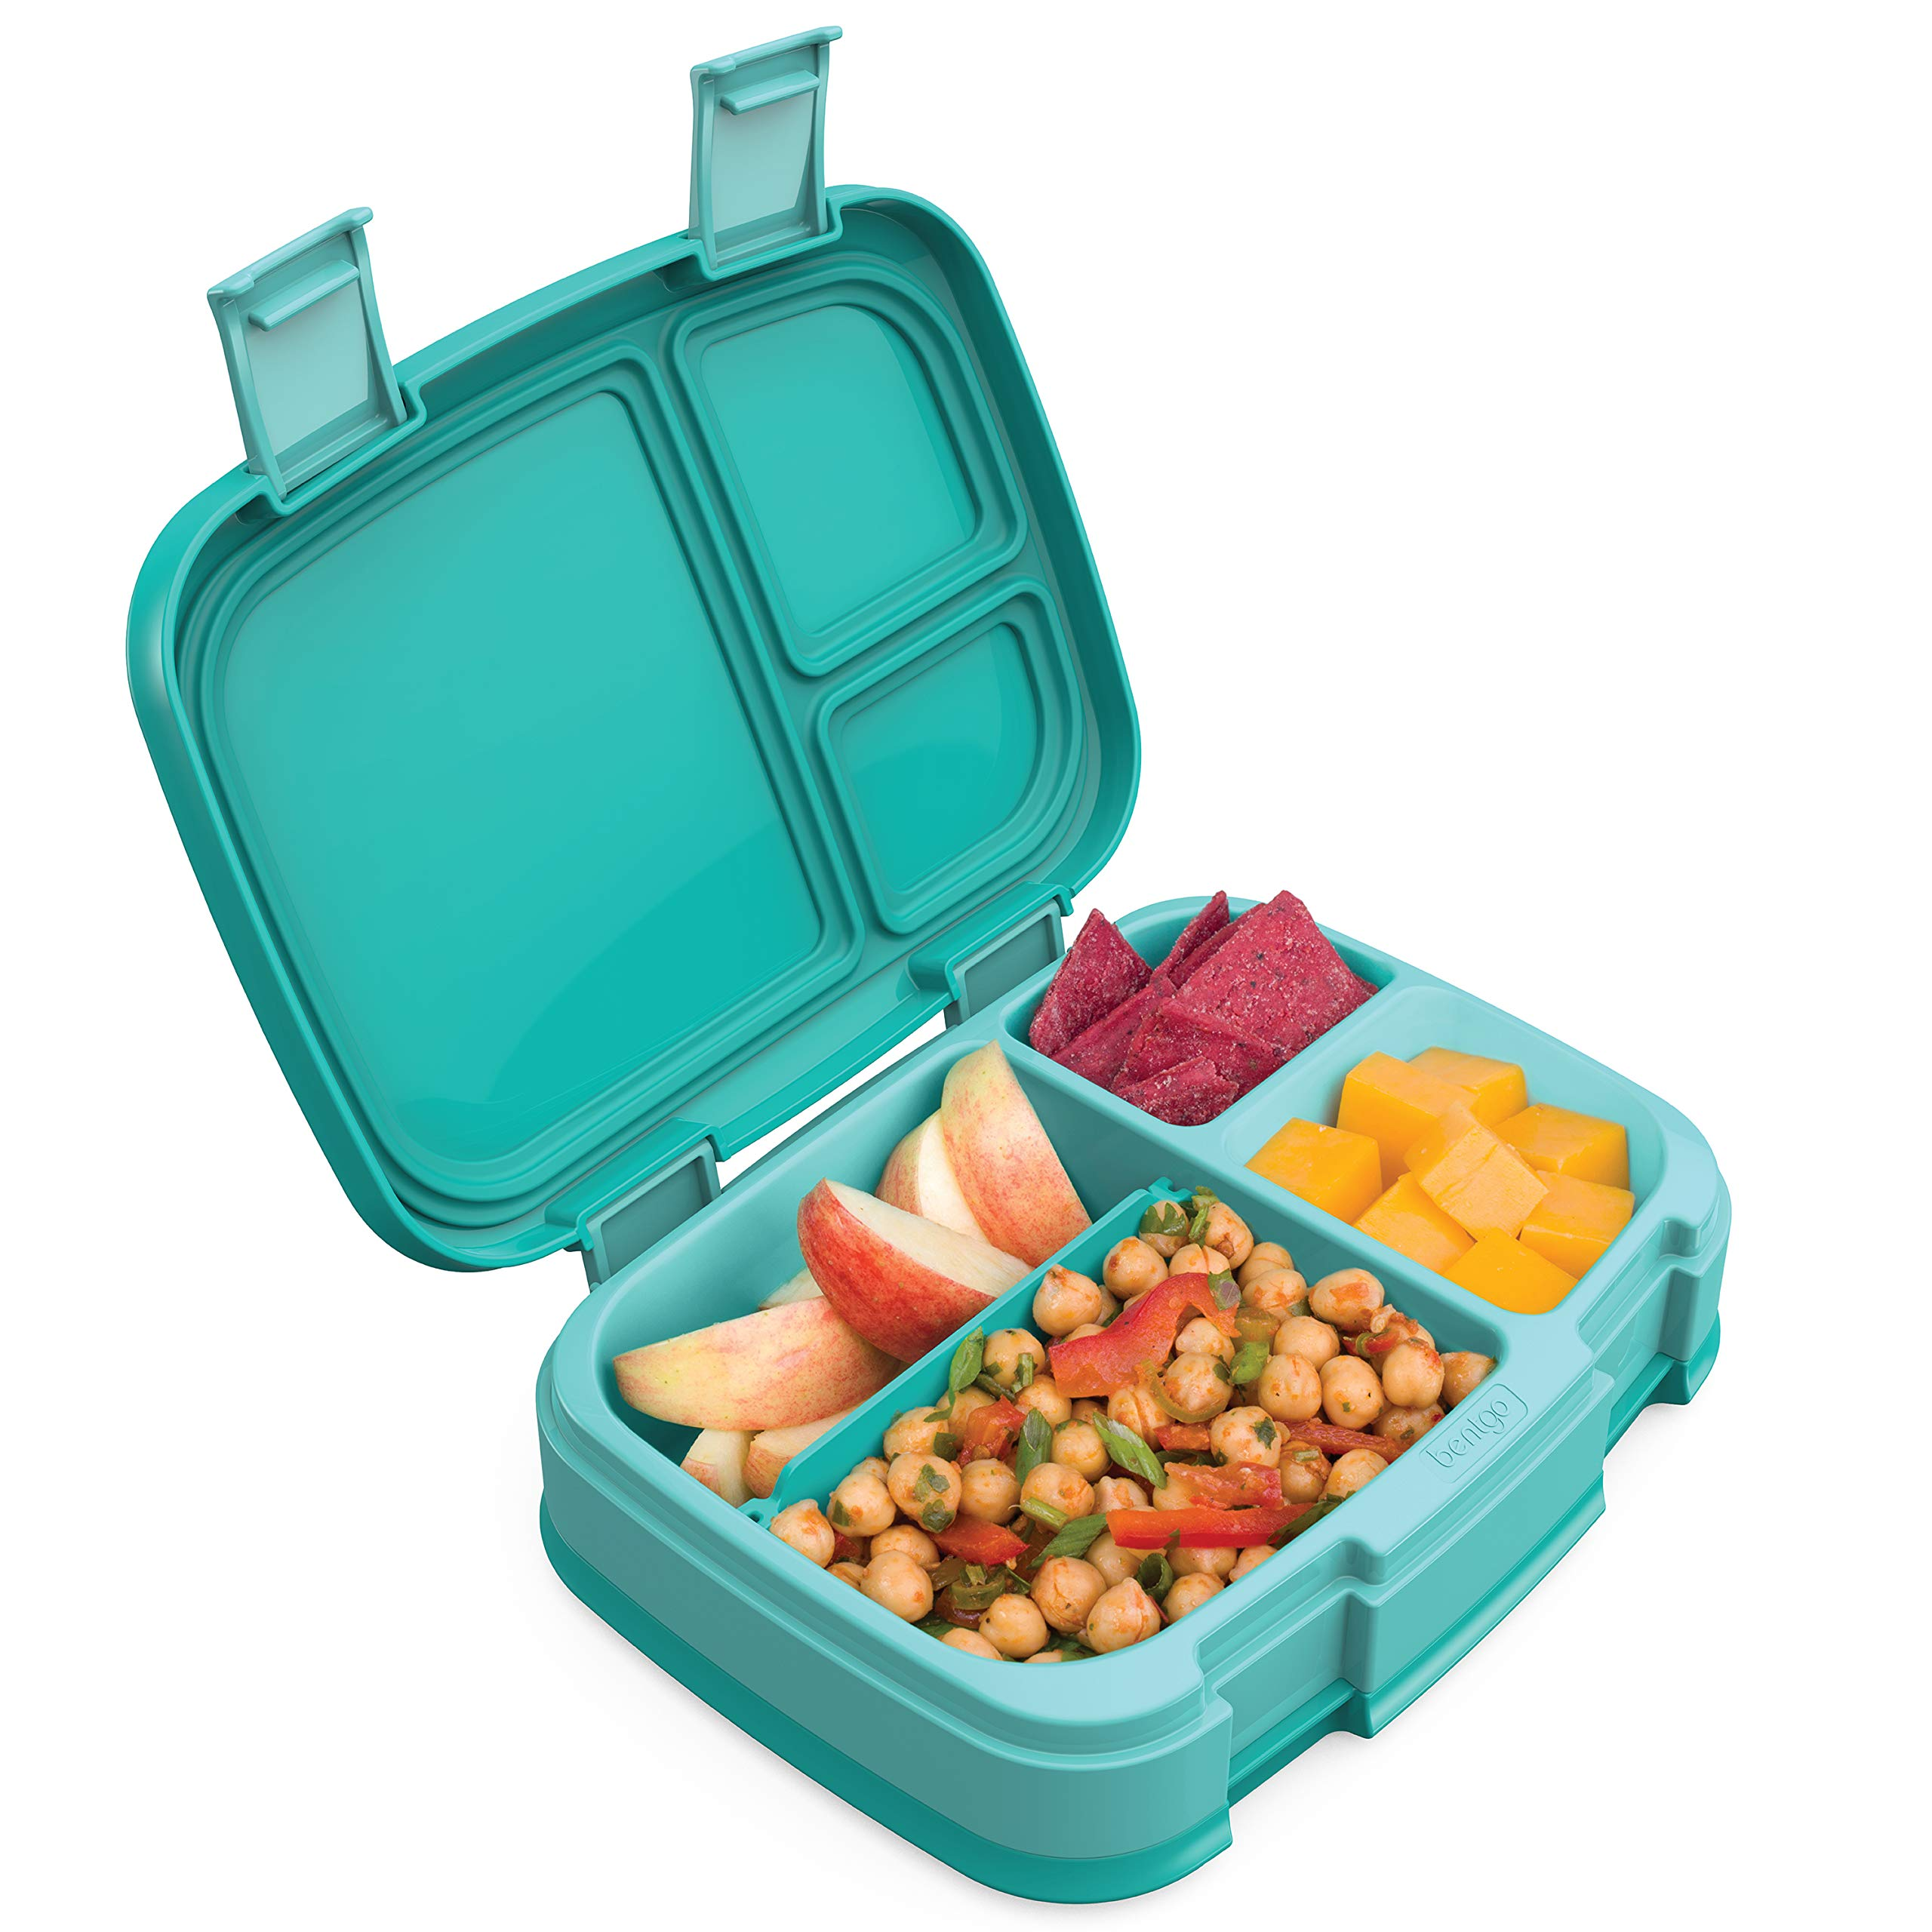 Bentgo Fresh (Aqua) – New & Improved Leak-Proof Versatile 4-Compartment Bento-Style Lunch Box – Ideal for Portion-Control and Balanced Eating On-The-Go – BPA-Free and Food-Safe Materials